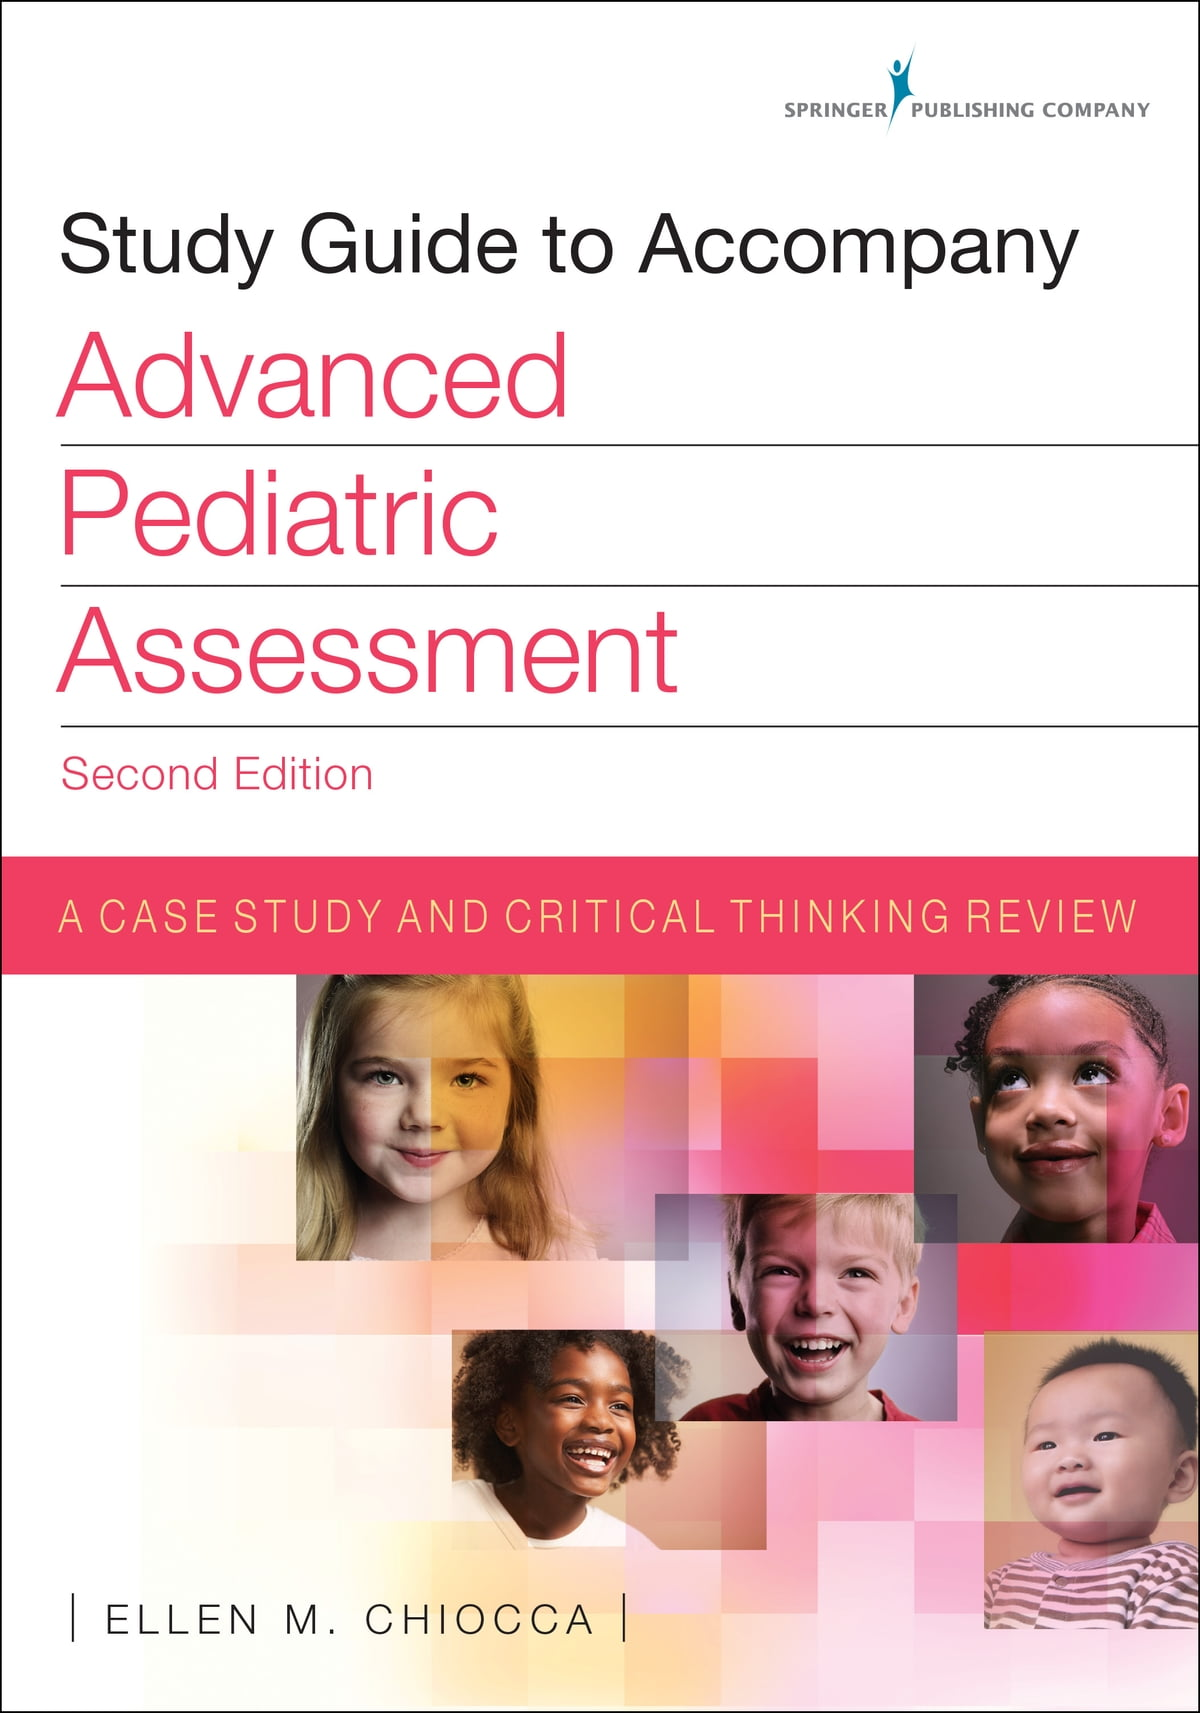 Study Guide to Accompany Advanced Pediatric Assessment, Second Edition  eBook by Ellen Chiocca, MSN, APN, RNC, CPNP - 9780826161758 | Rakuten Kobo